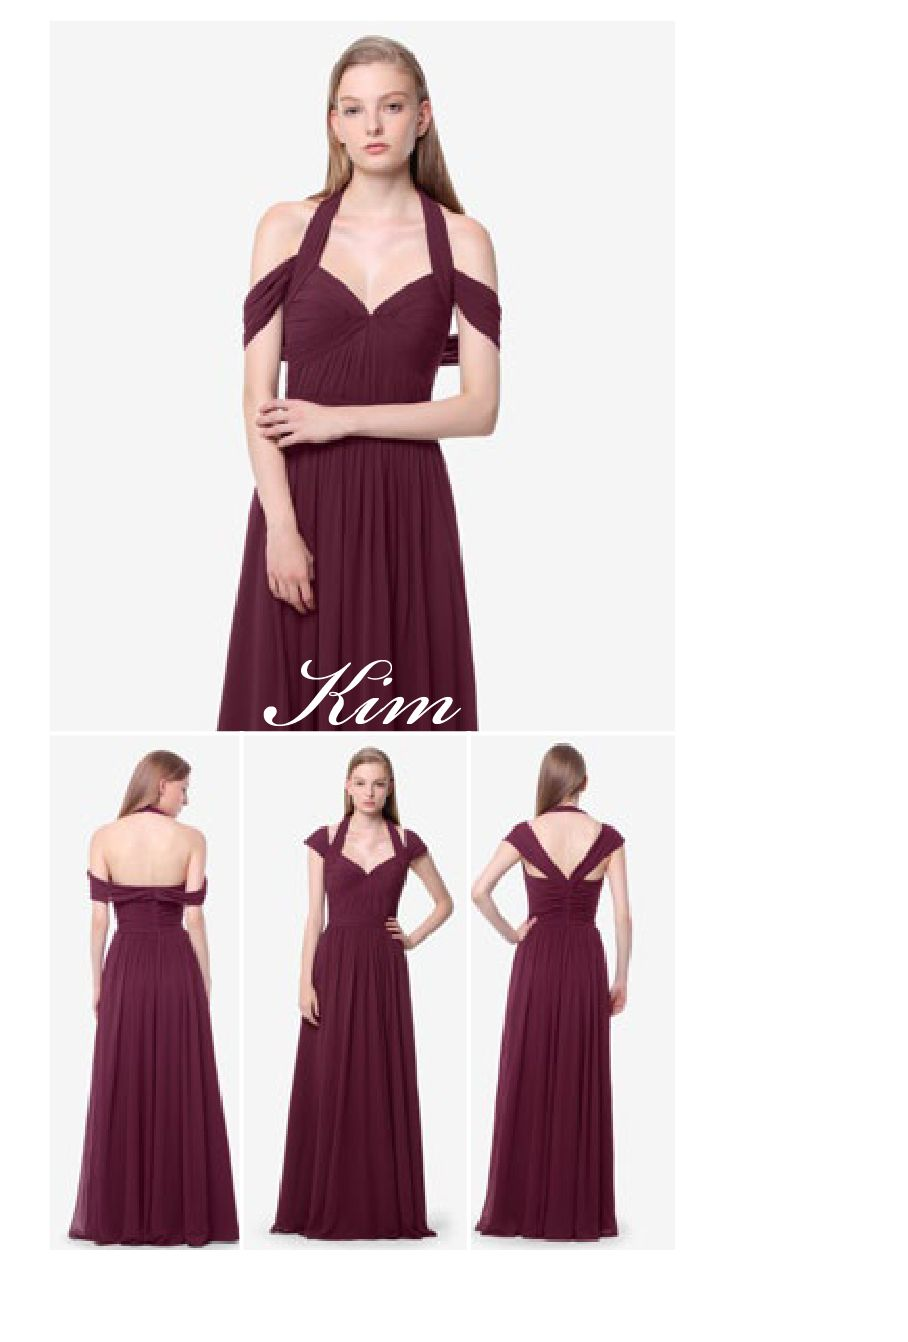 Kim bridesmaid gown in Raspberry.  Wear it with draped sleeves or cap sleeves.  By David Tutera for Gather & Gown